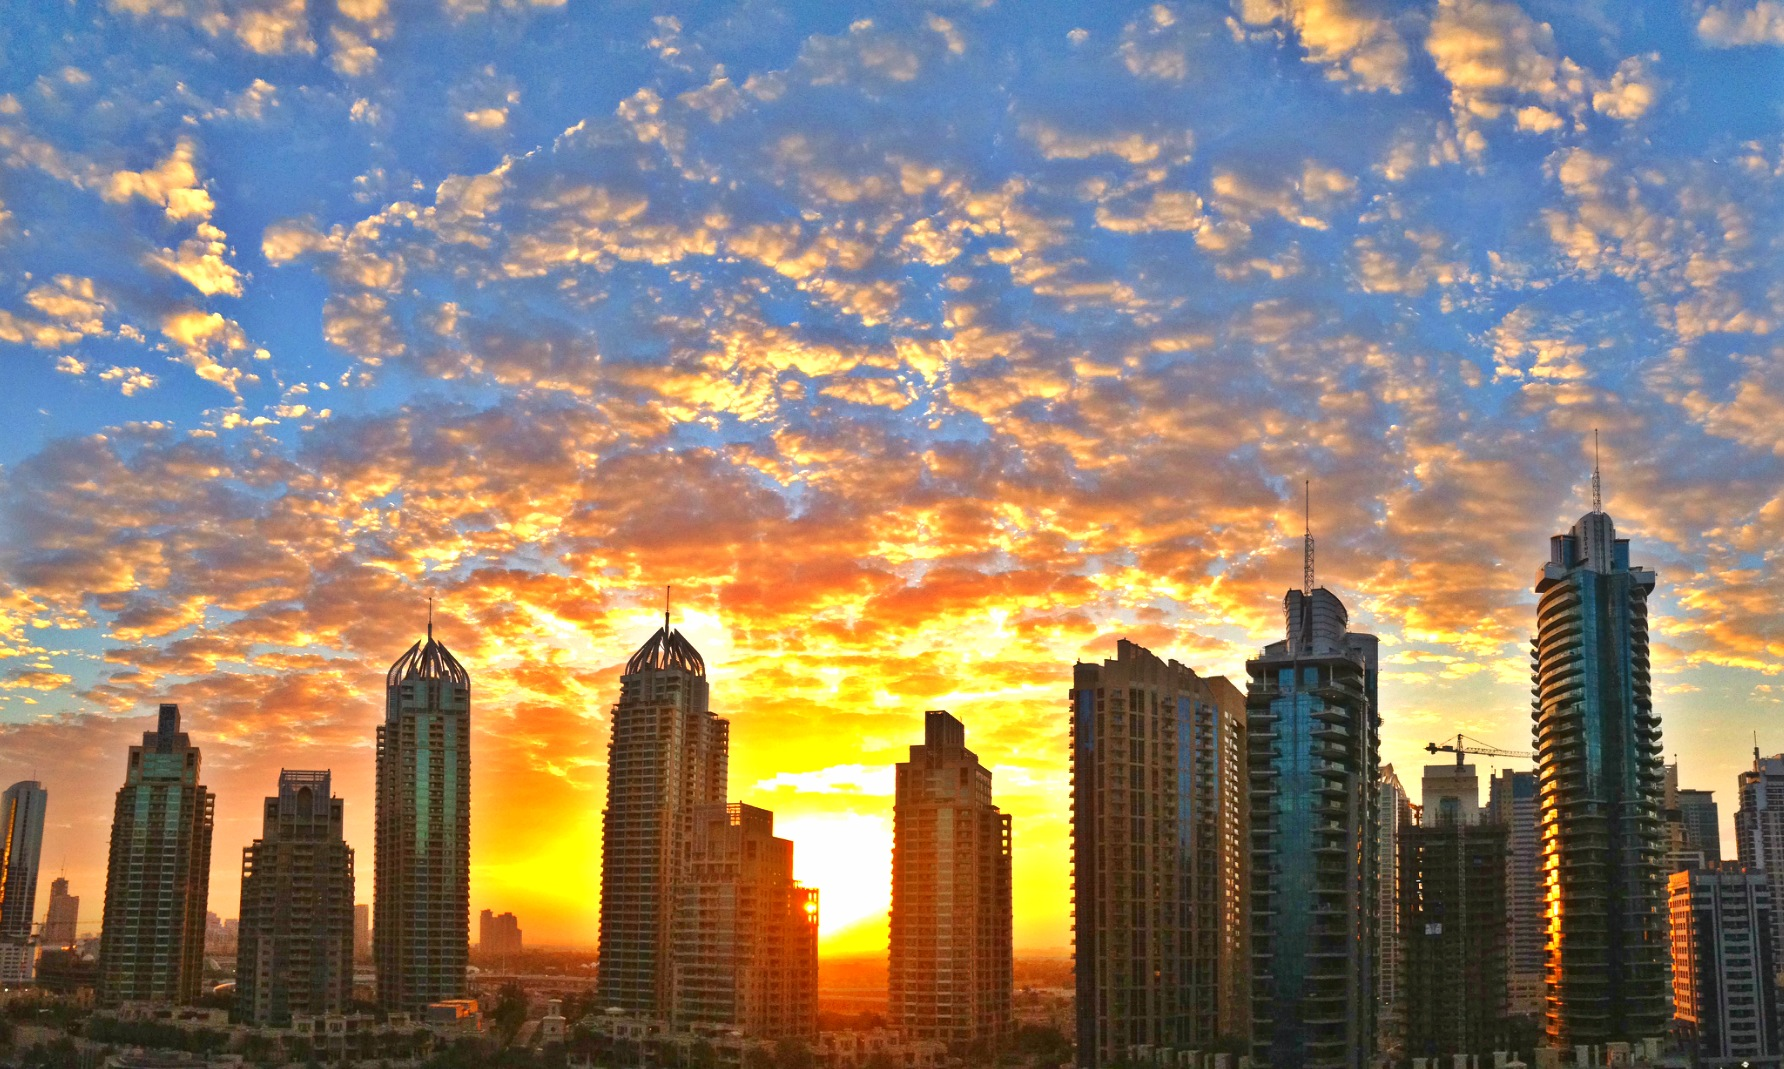 UAE cities become more affordable in 2020 | ZAWYA MENA Edition